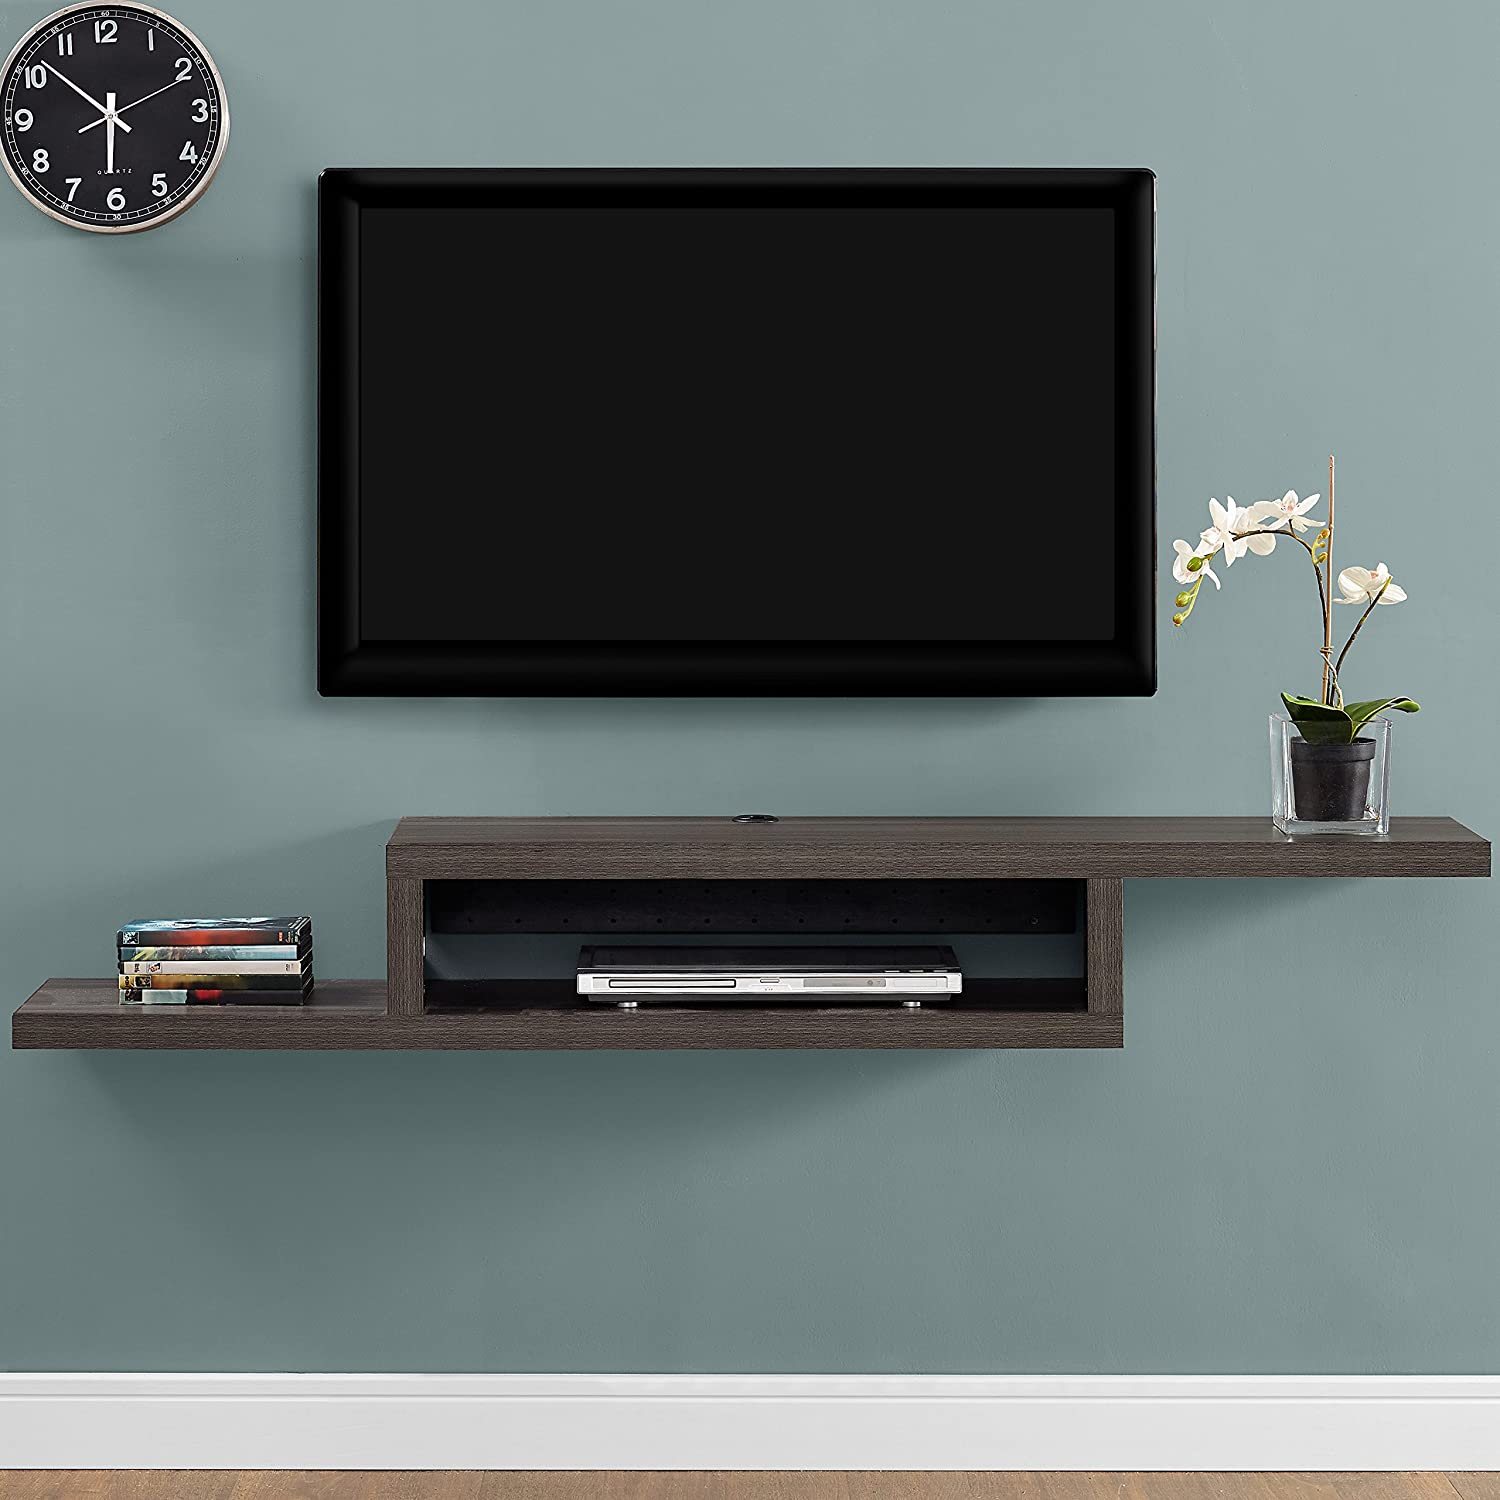 Martin FurnitureAsymmetrical Floating Wall Mounted TV Console, 60inch, Skyline Walnut